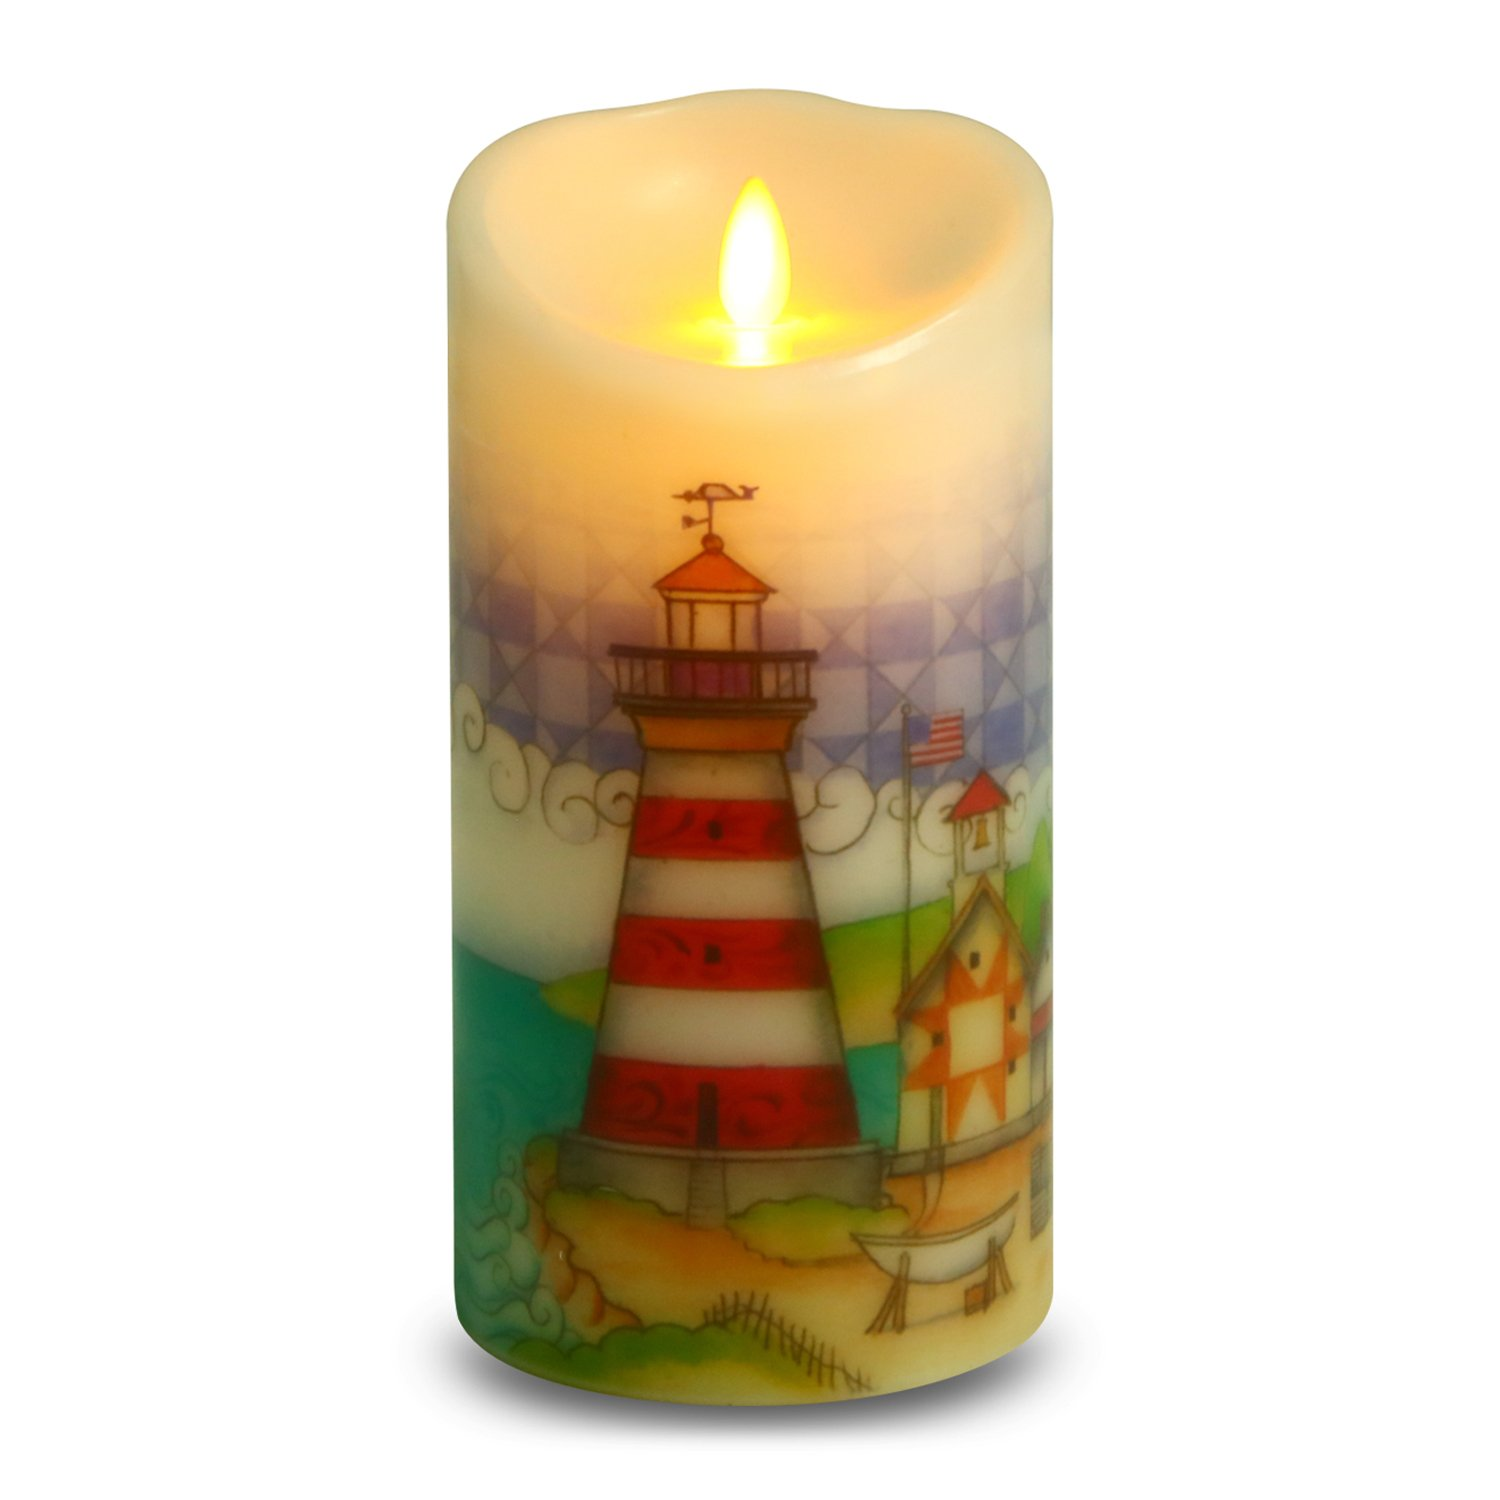 Ksperway Flameless Wax Candles, Moving Wick LED Pillar Candle with Blow ON/Off Control,Timer and Remote 3.5 by 7 Inch Picture (Lighthouse) by Ksperway (Image #7)